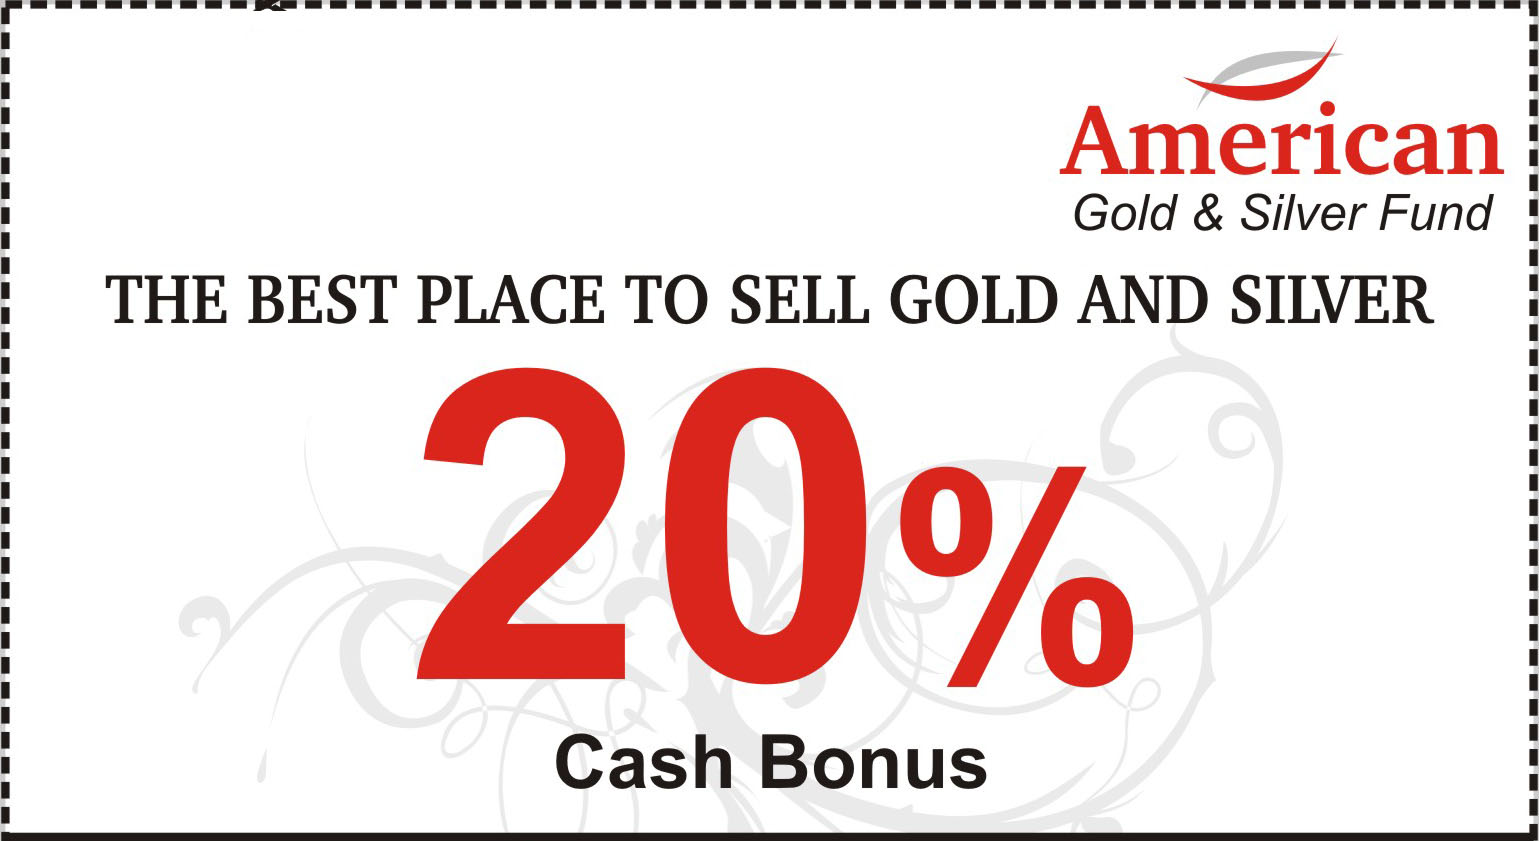 Sell Gold Clifton NJ, Sell Gold Carlstadt NJ 